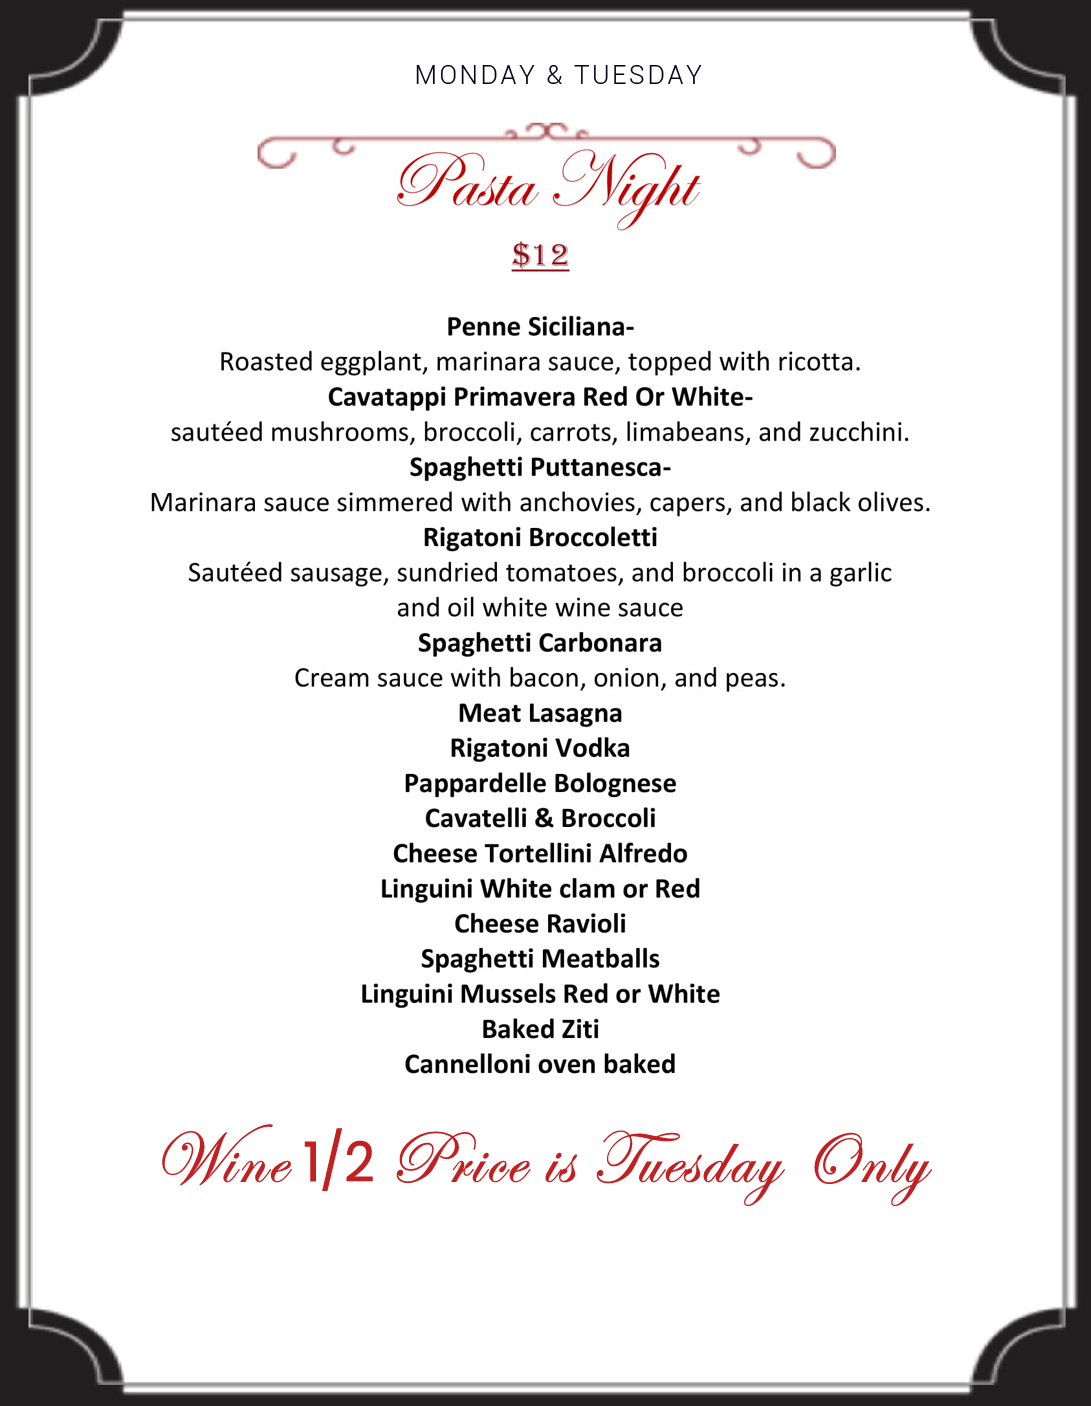 pasta night menu at Ciro's Ristorante NJ